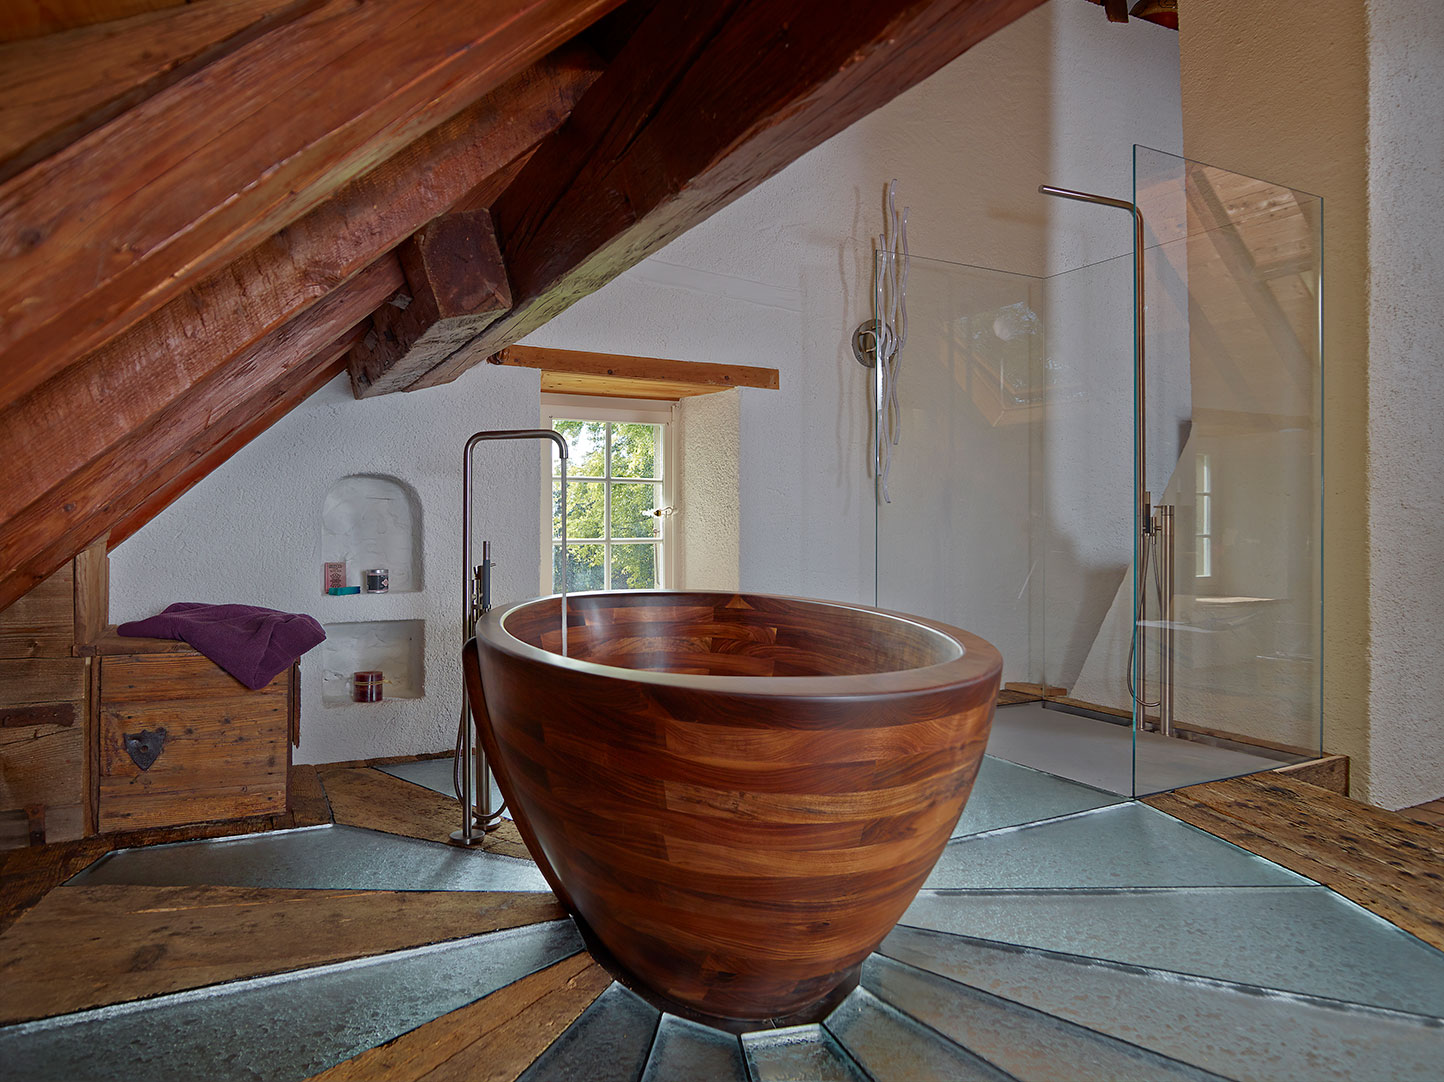 Image no. 2 of Baula bathtub and Kapai washbasin made in Walnut - Farmhouse in Switzerland